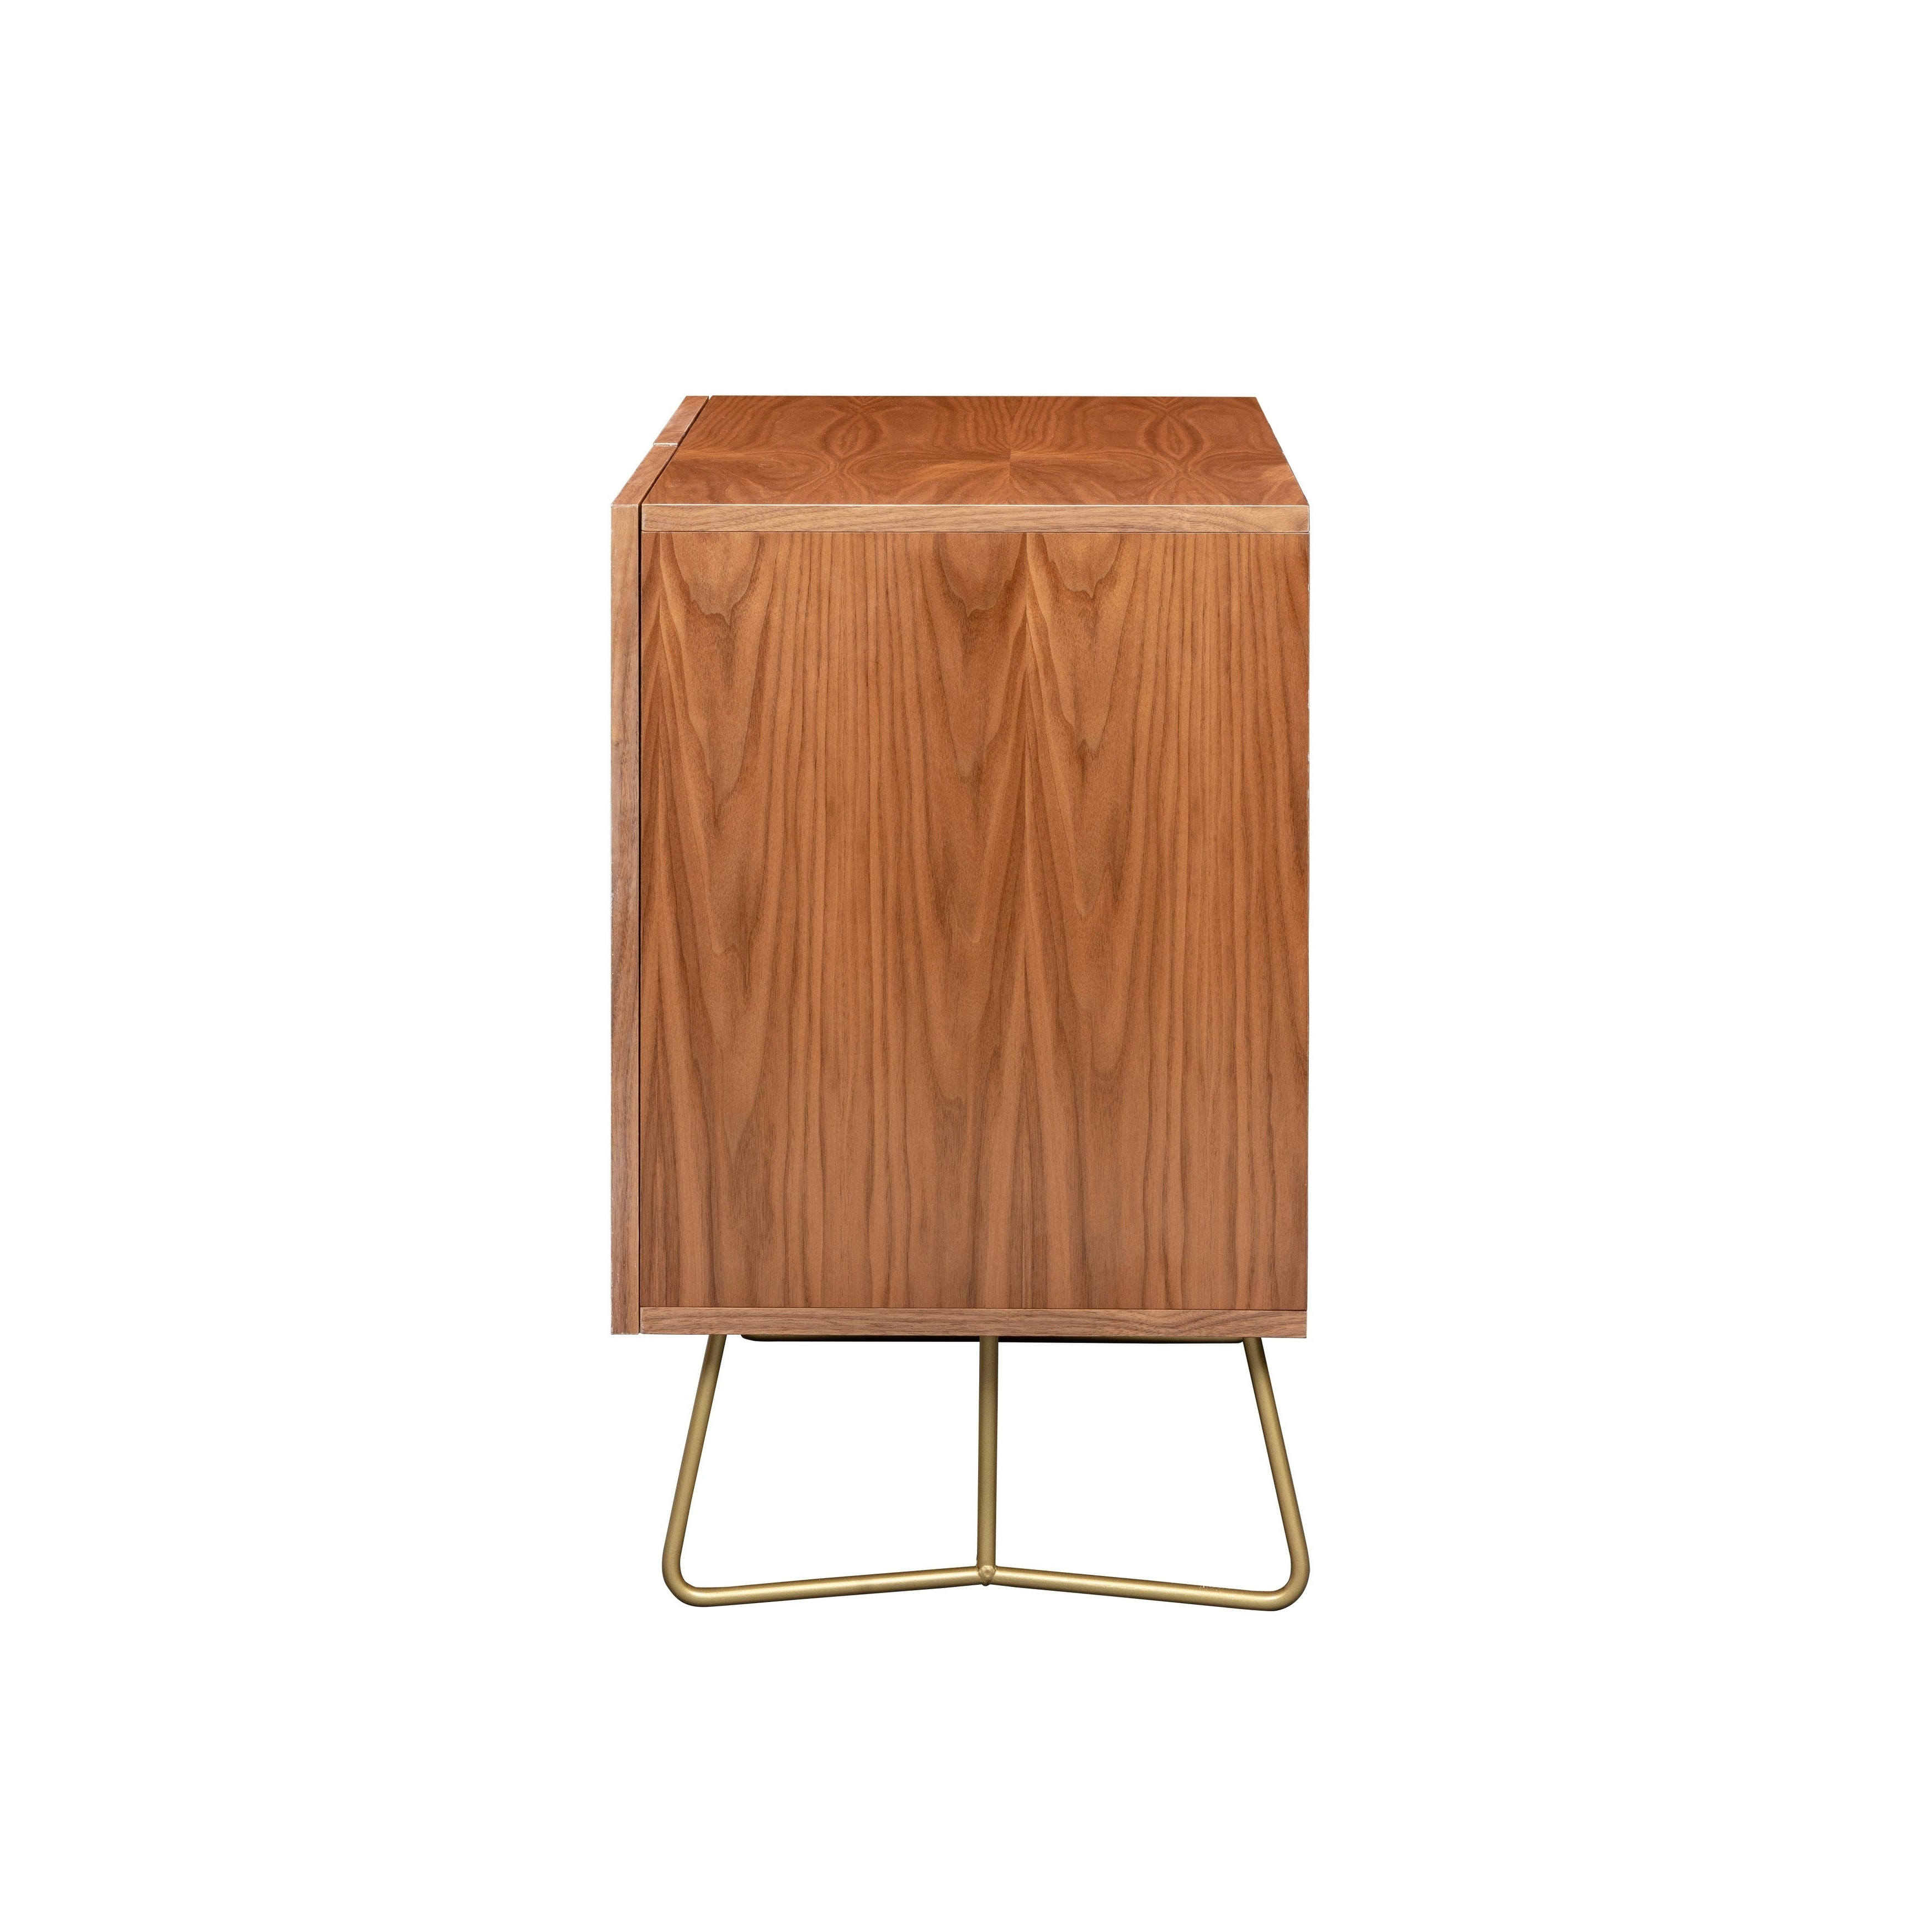 Deny Designs Agate Chevron Credenza (Birch Or Walnut, 2 Leg Options) Intended For Oenomel Credenzas (View 4 of 20)